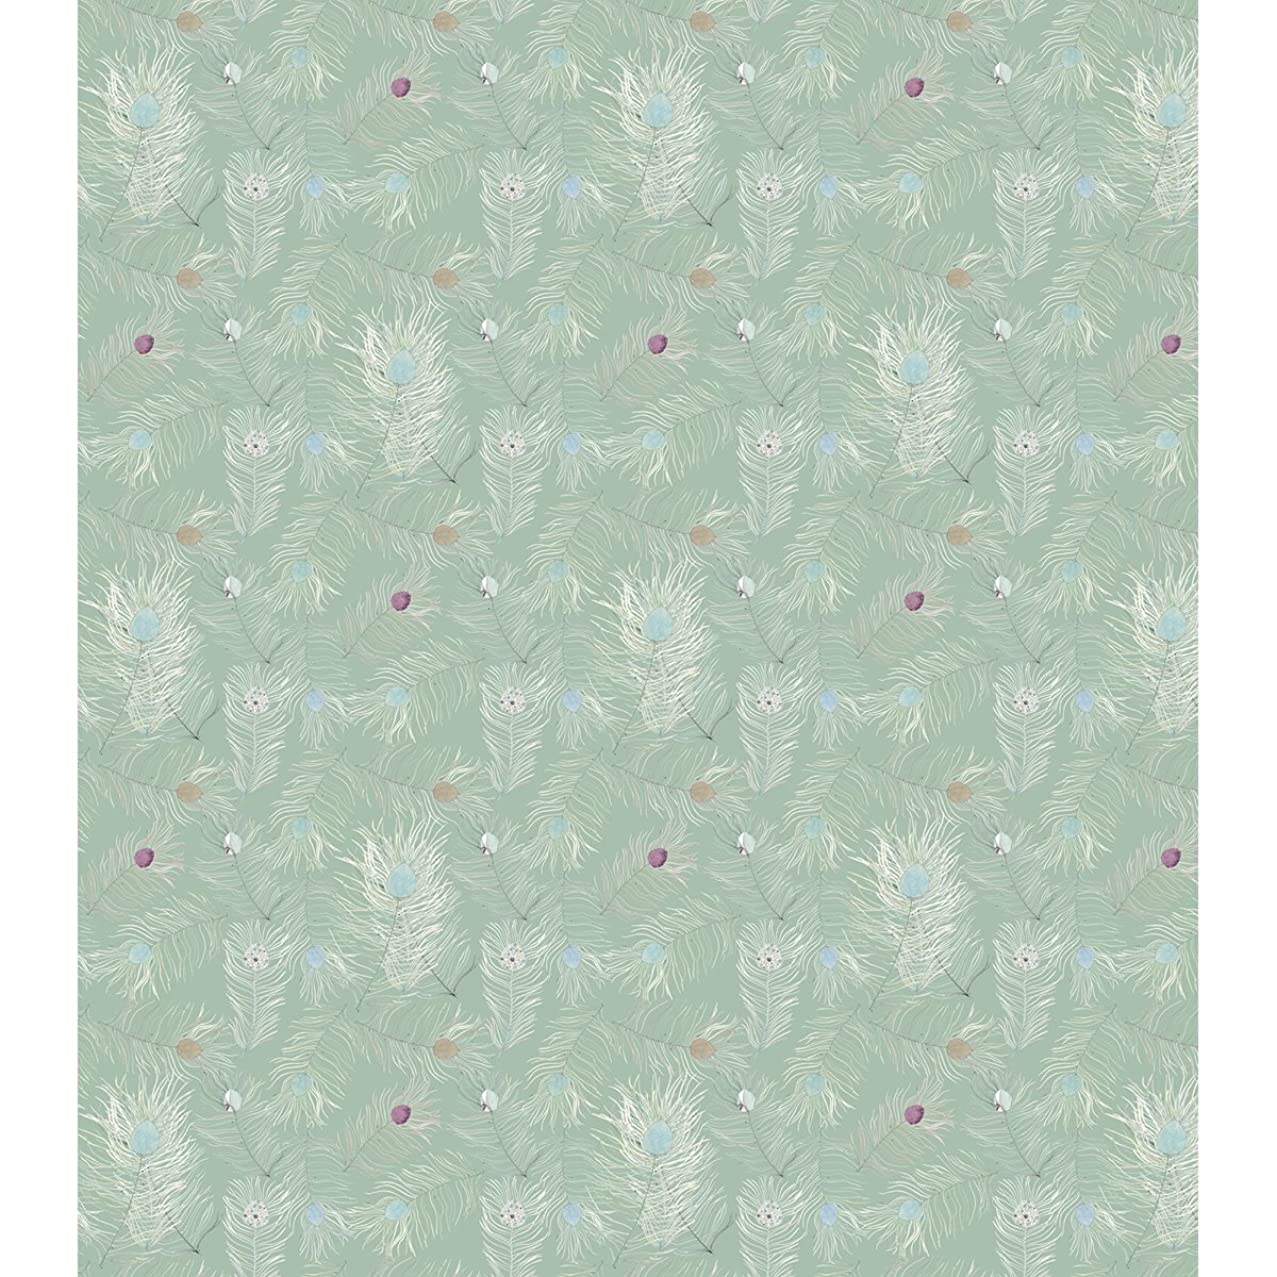 Craft Consortium Peacock Turquoise Decoupage Papers (3 Pack), 13.75 x 15.75